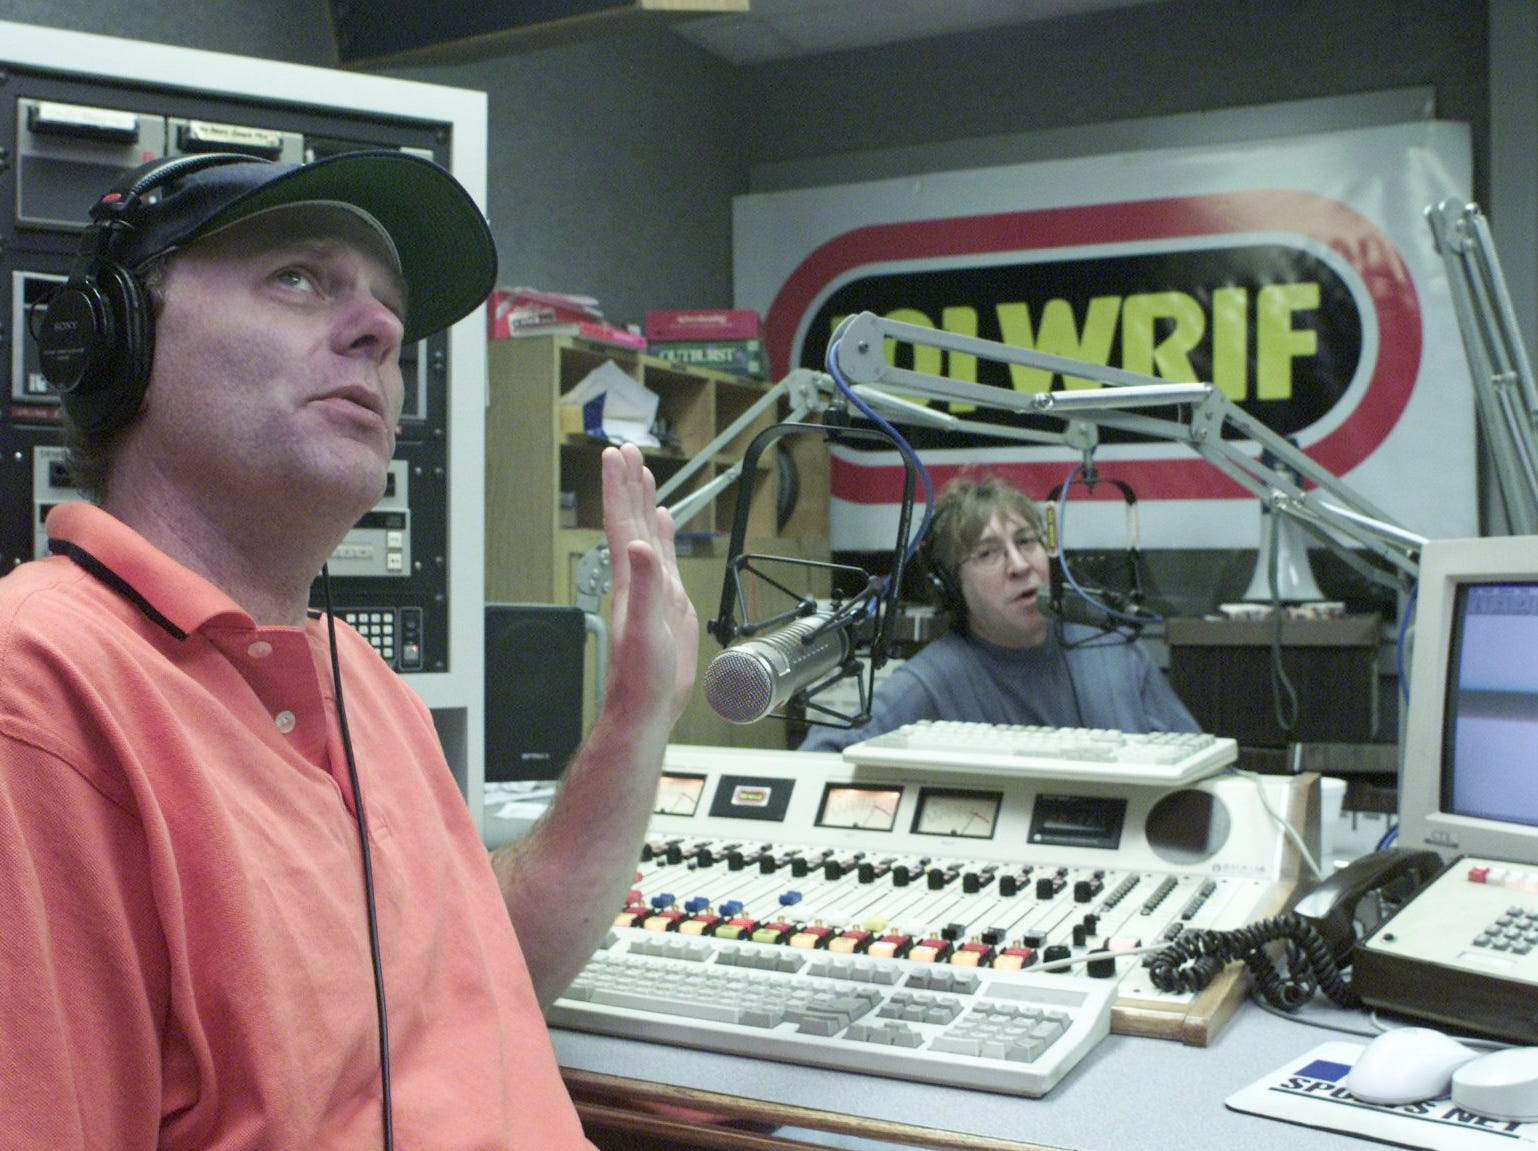 Drew Lane, left, and Mike Clark, right, are co-hosts of WRIF's The Drew and Mike Show photographed on Wednesday, Nov. 28, 2001.